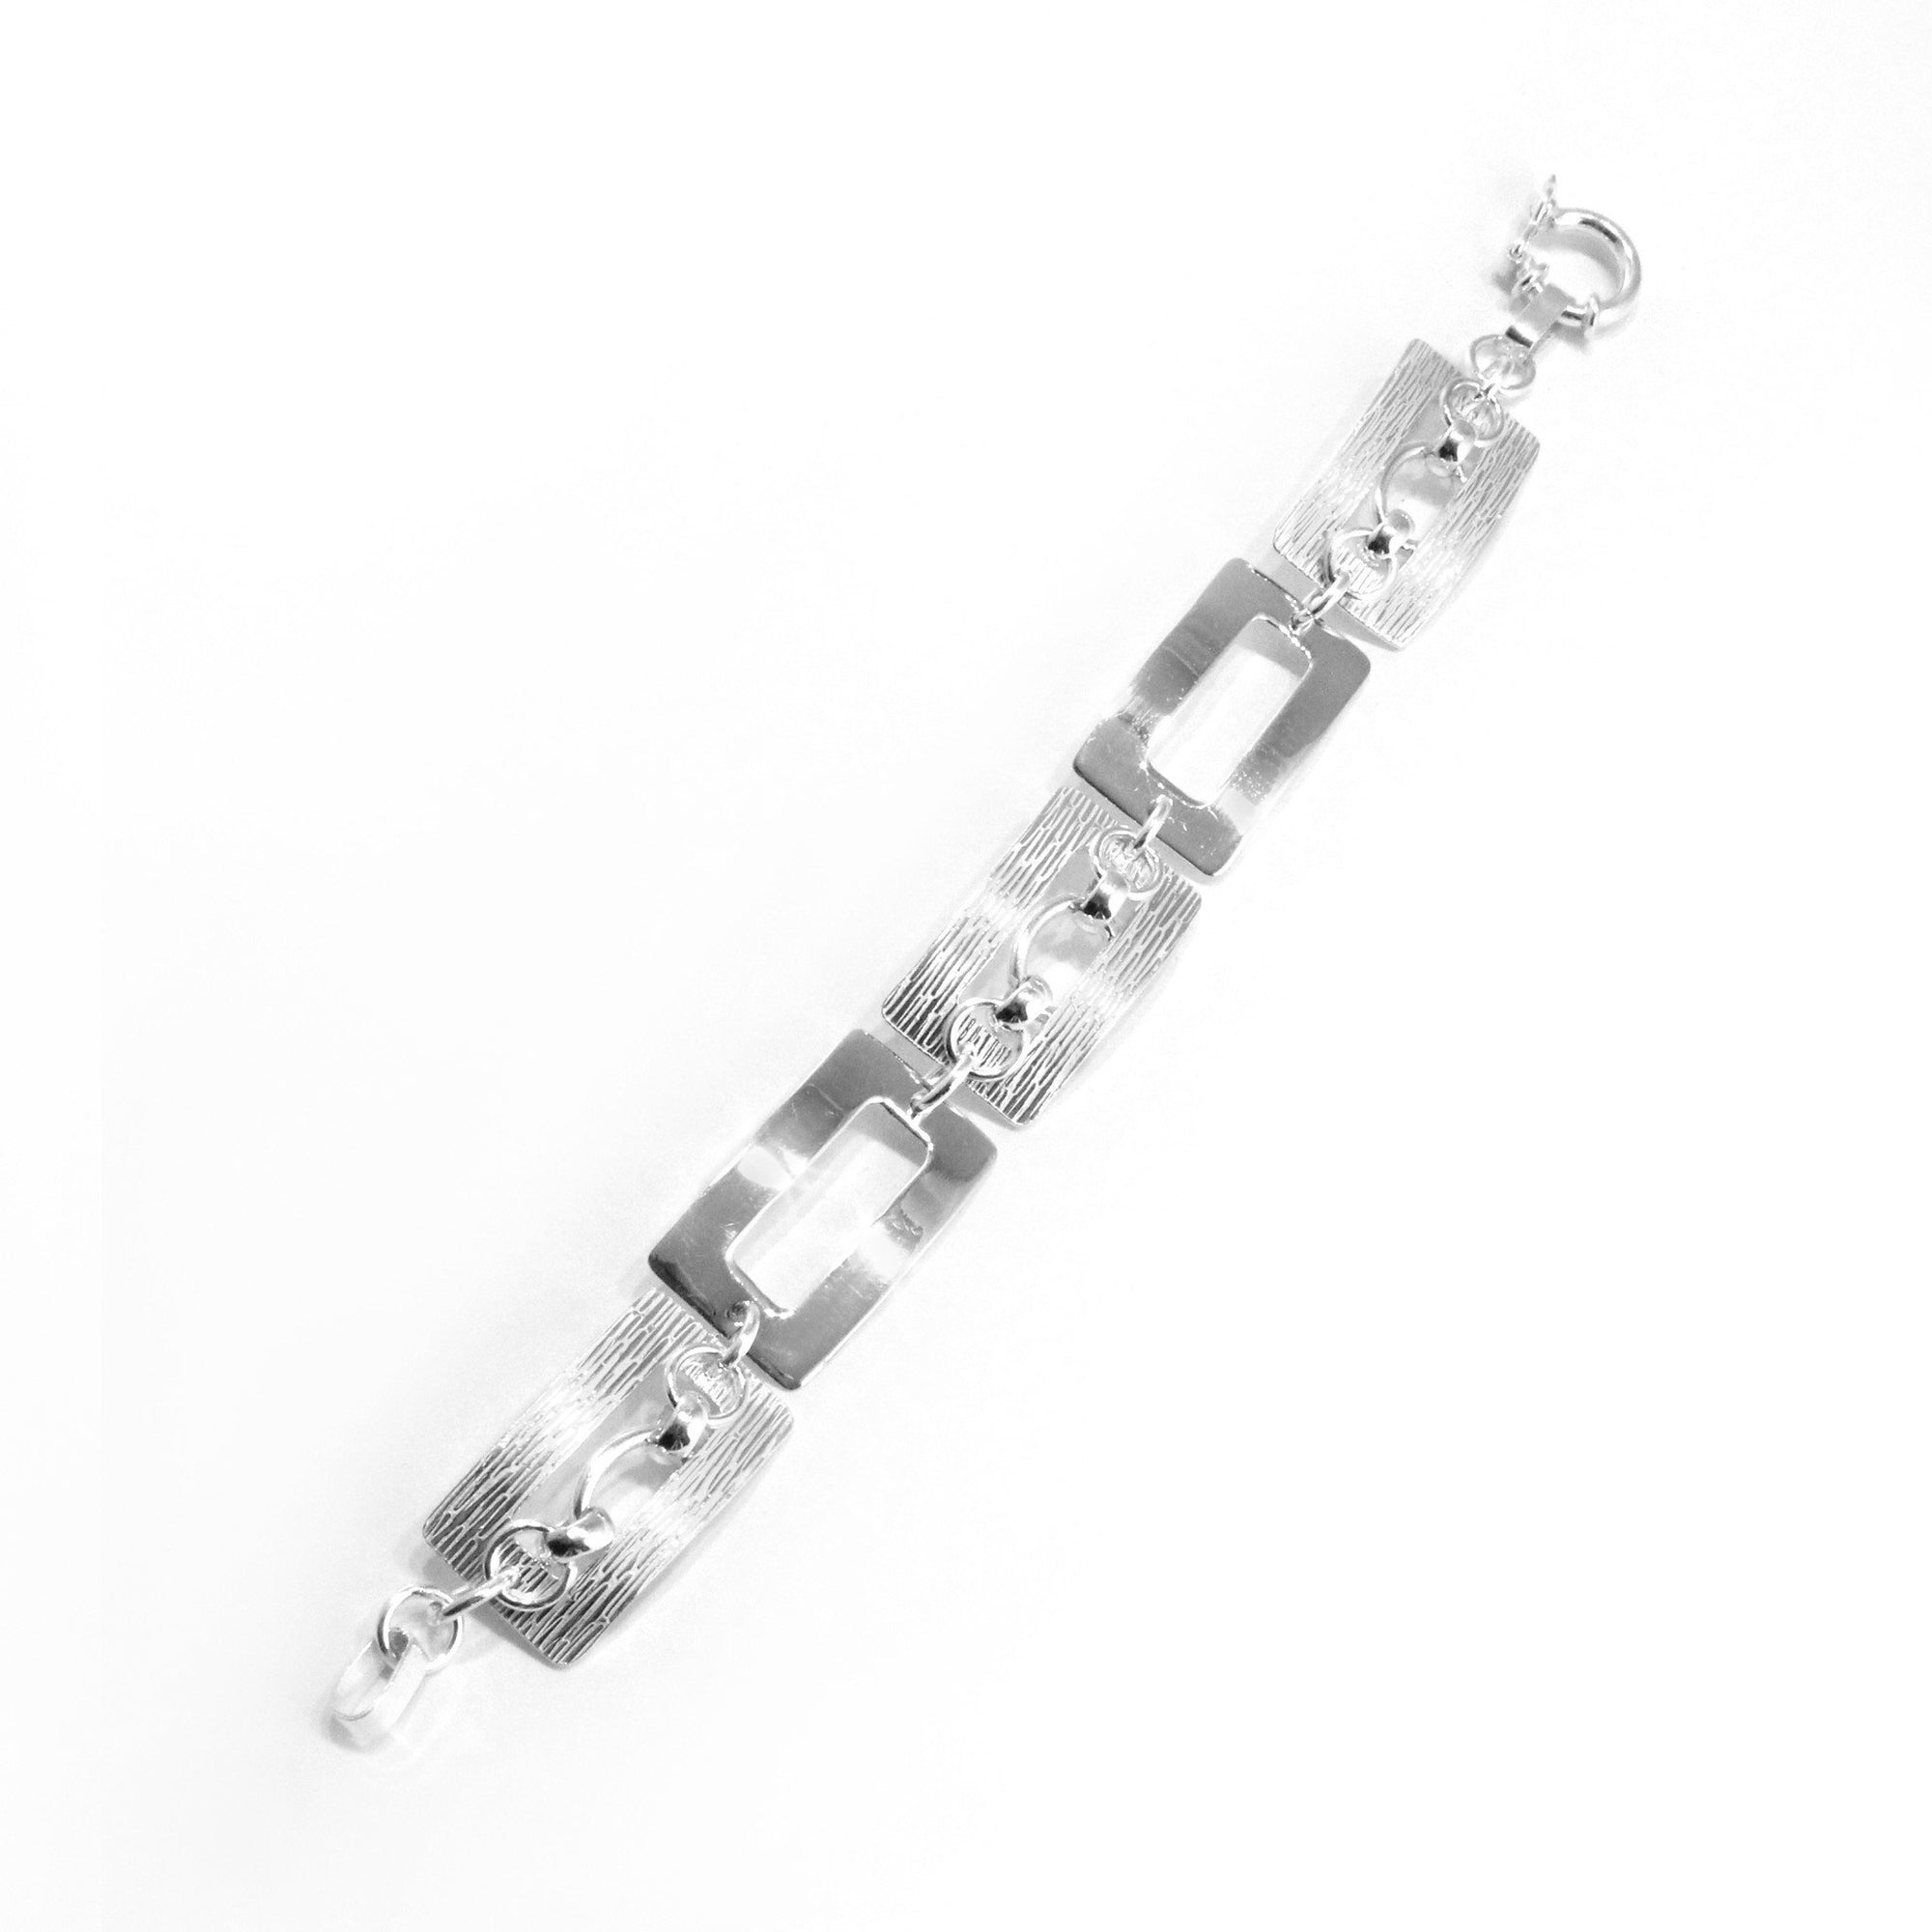 Textured Geometric Sterling Silver Bracelet - Qinti - The Peruvian Shop